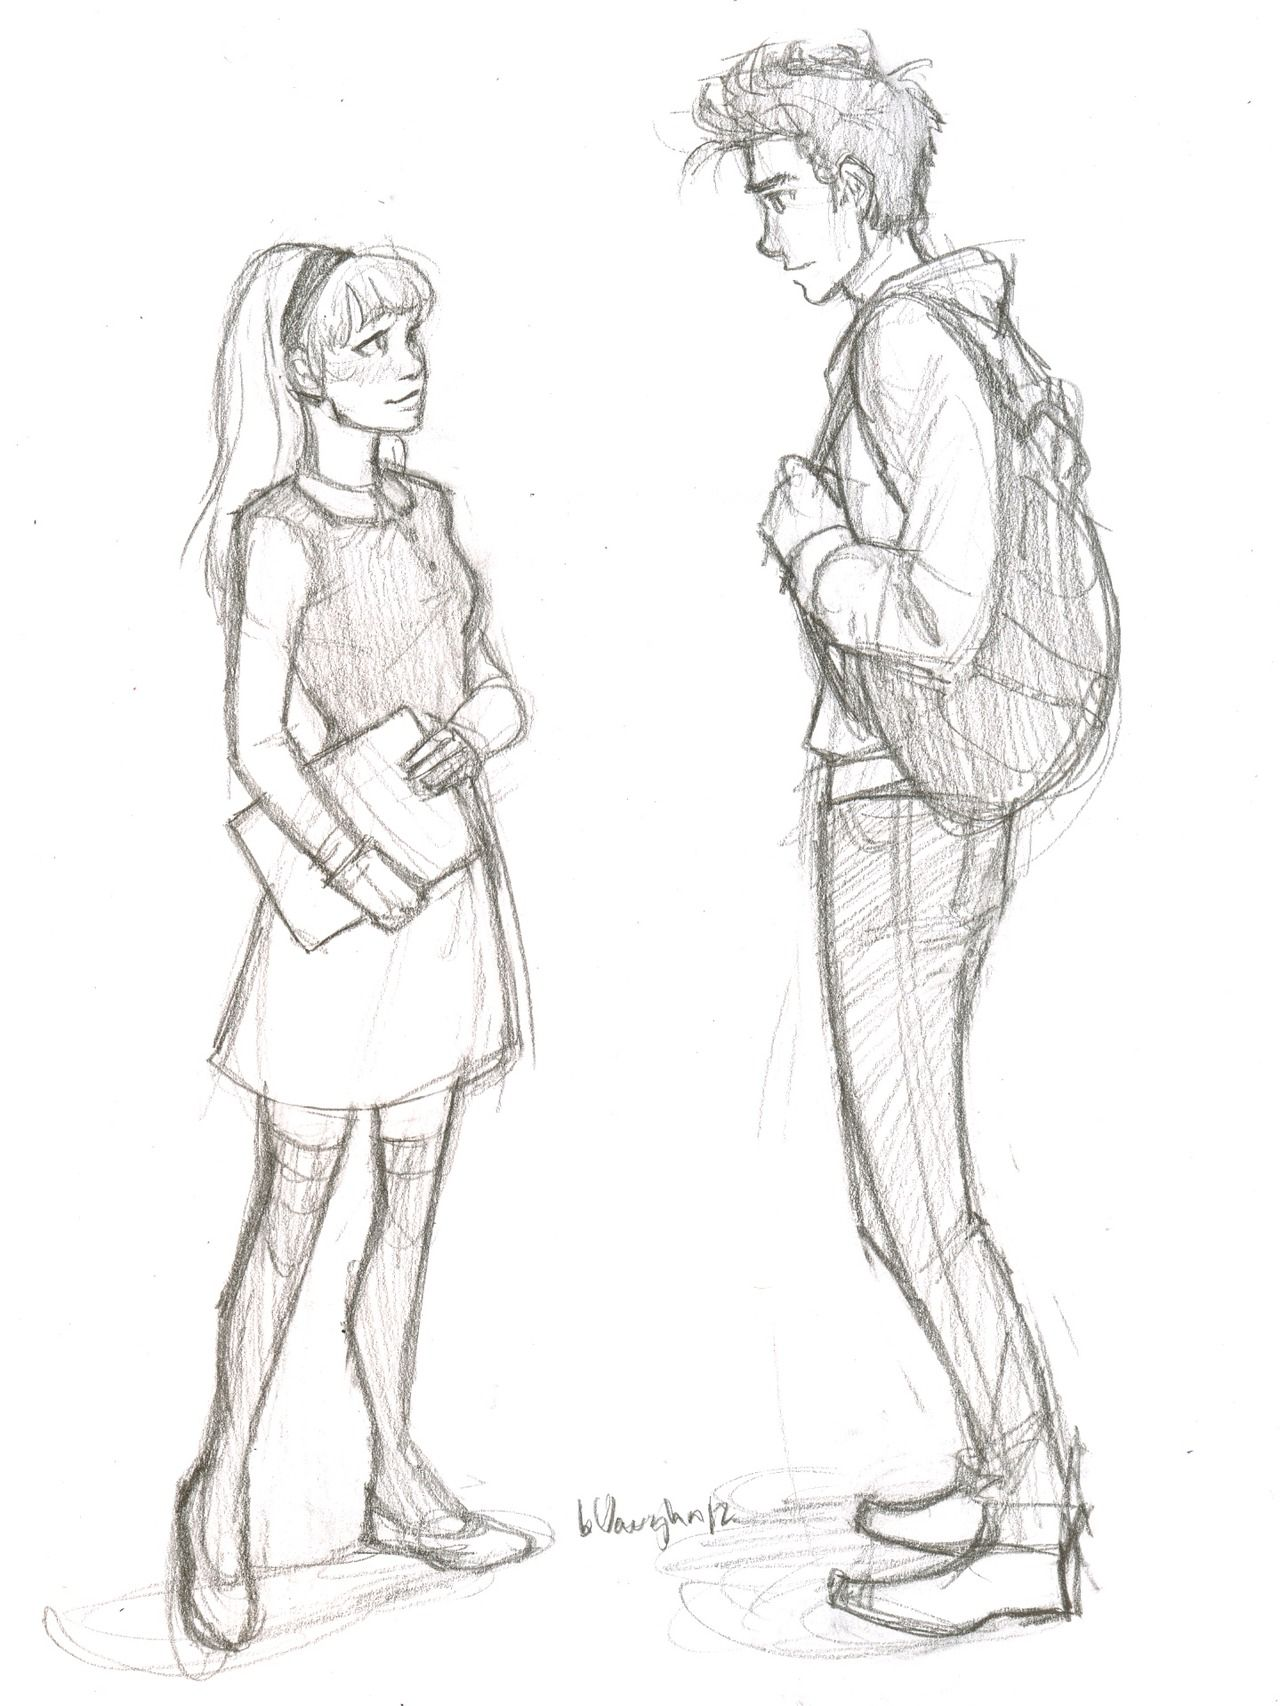 Peter Parker and Gwen Stacey ~BurdgBug(brigid vaugn)